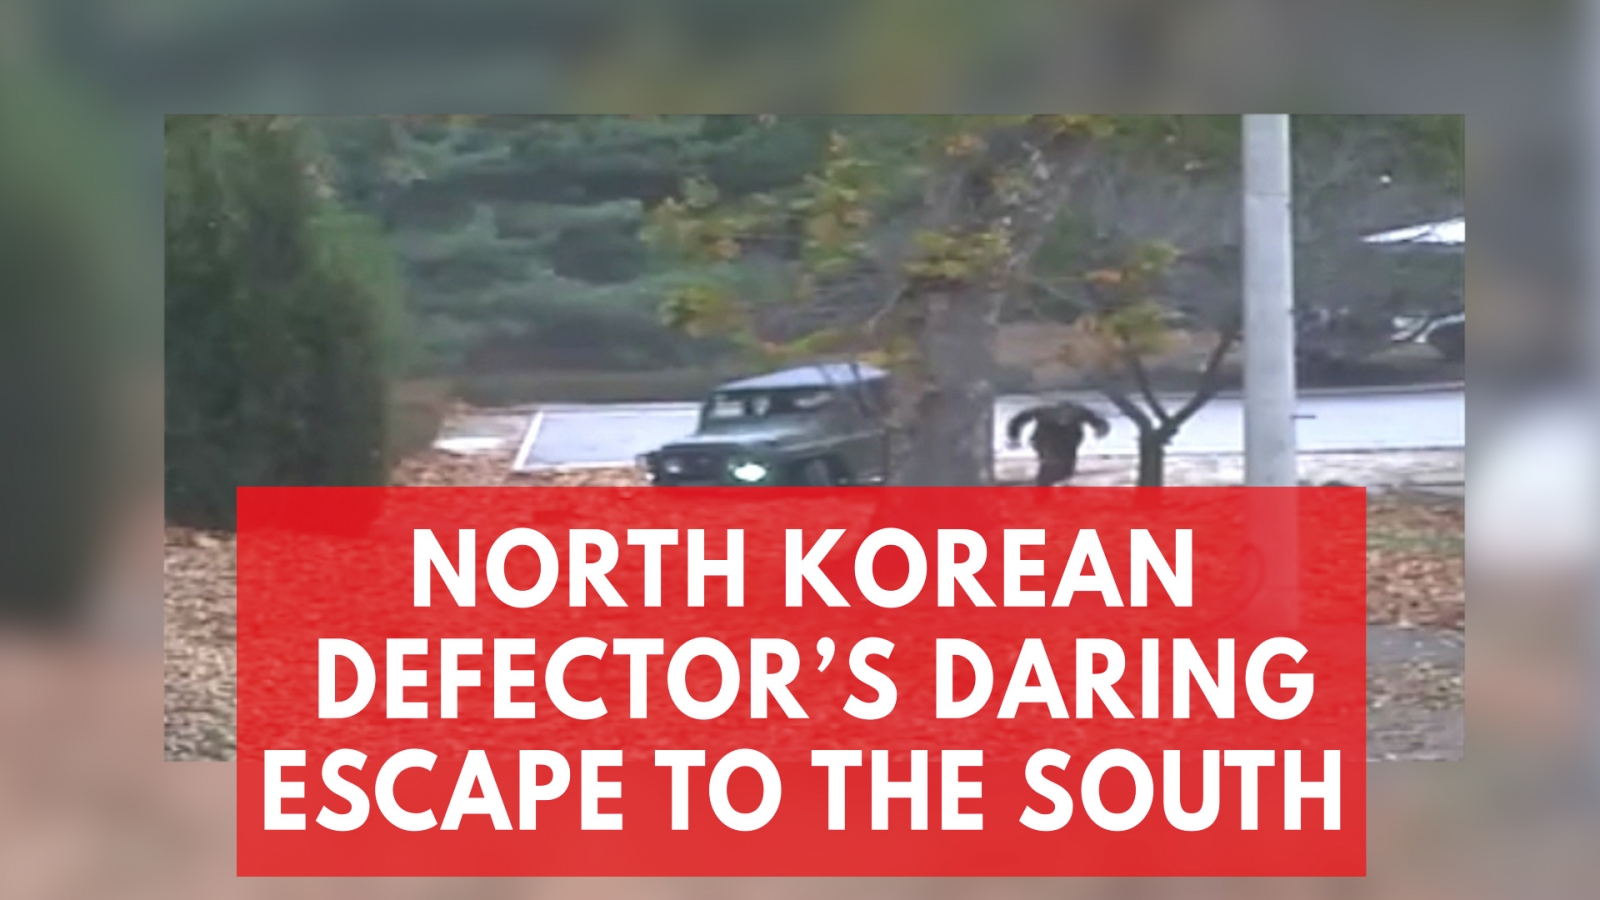 Dramatic Footage Shows the Moment North Korean Defector Escapes to the South